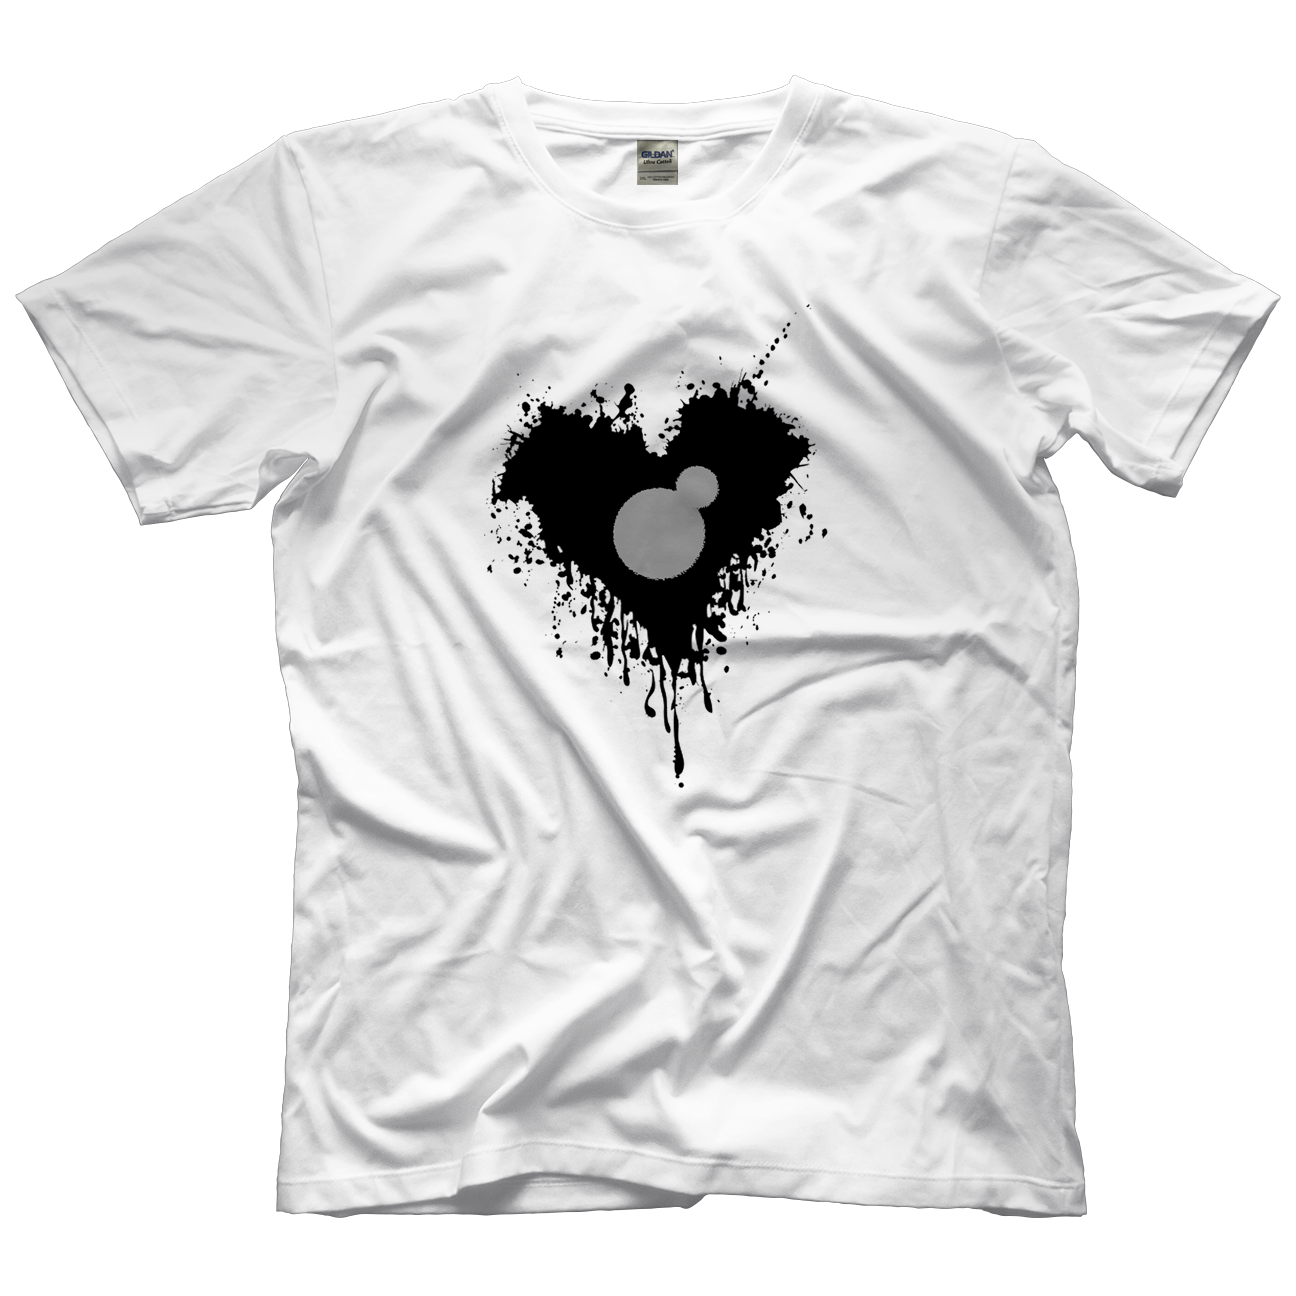 A TShirt from FNX Network